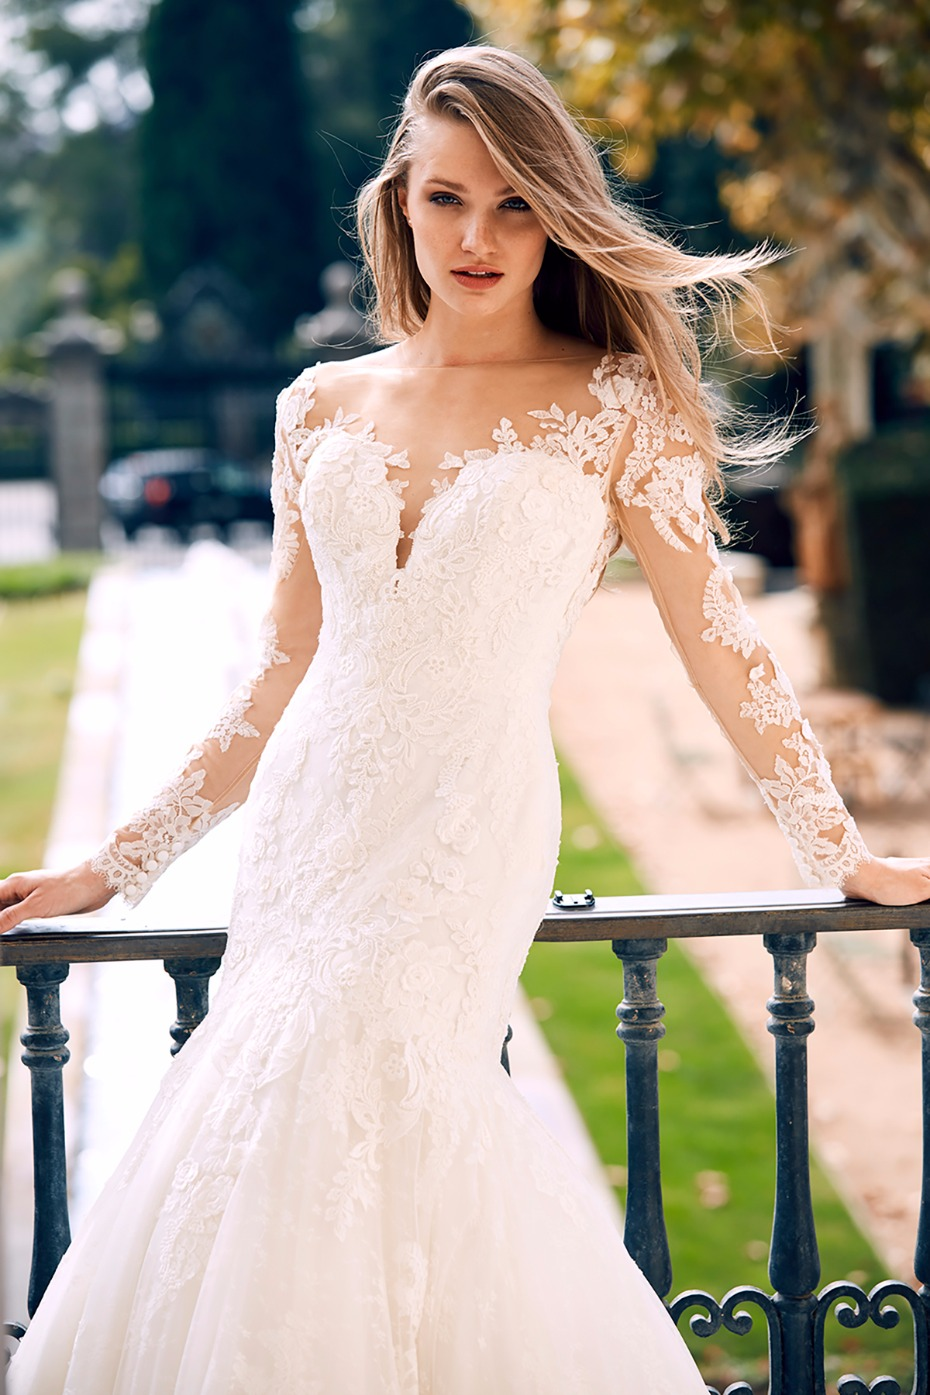 New princess wedding dresses from st patrick la sposa 2018 for La sposa wedding dress